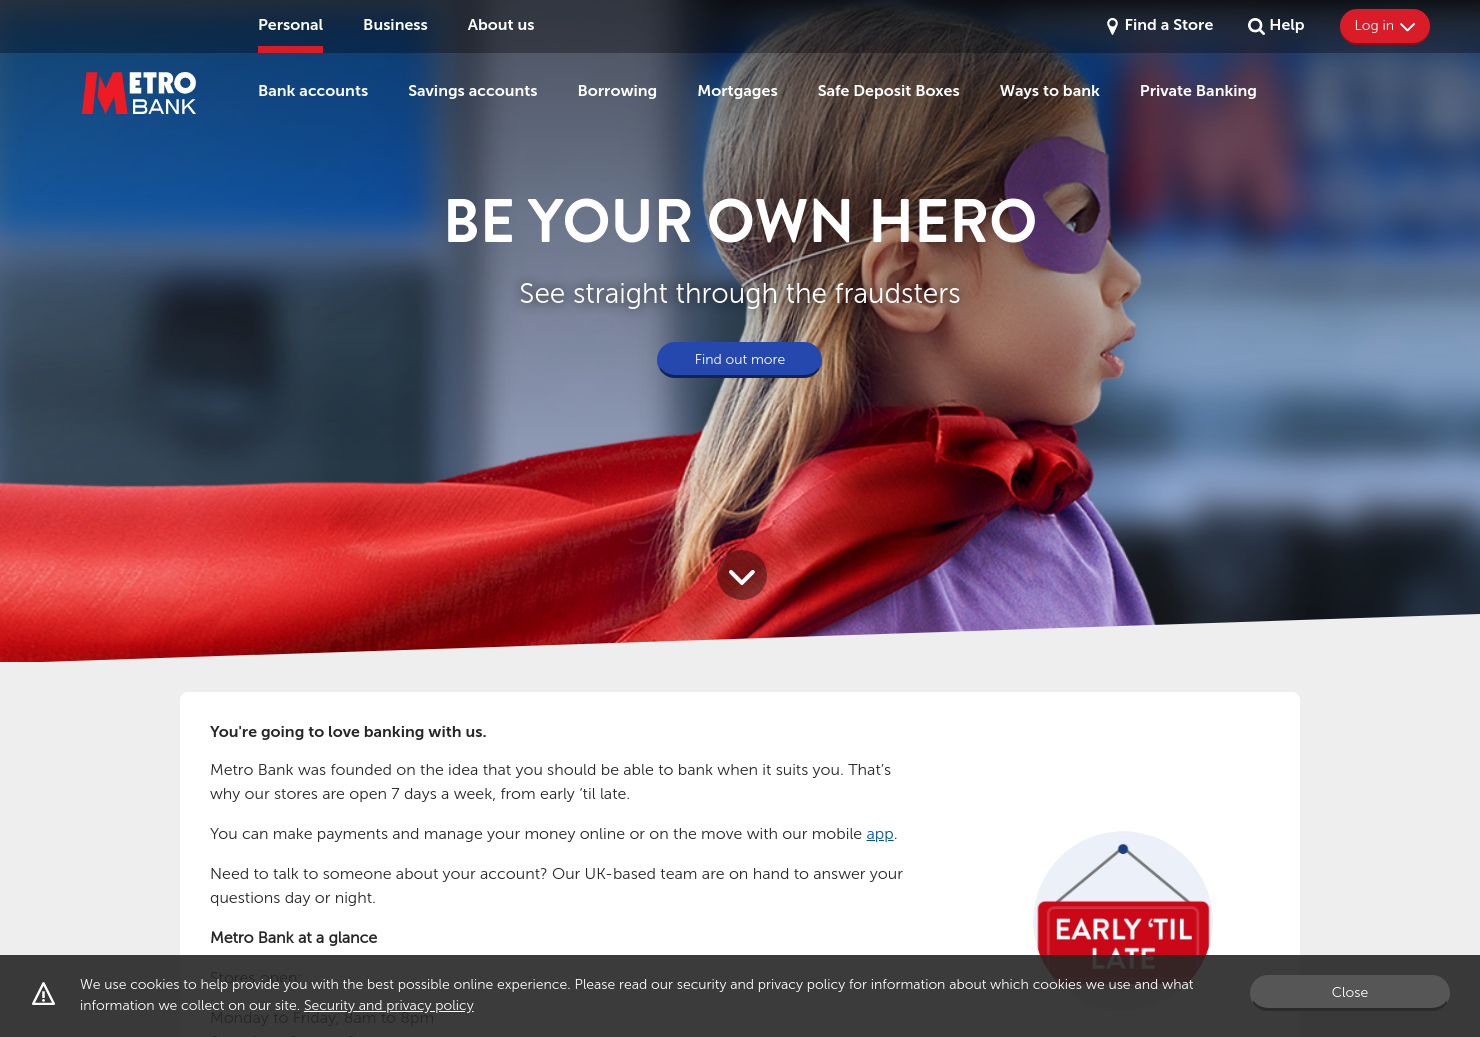 Metro Bank Home Page